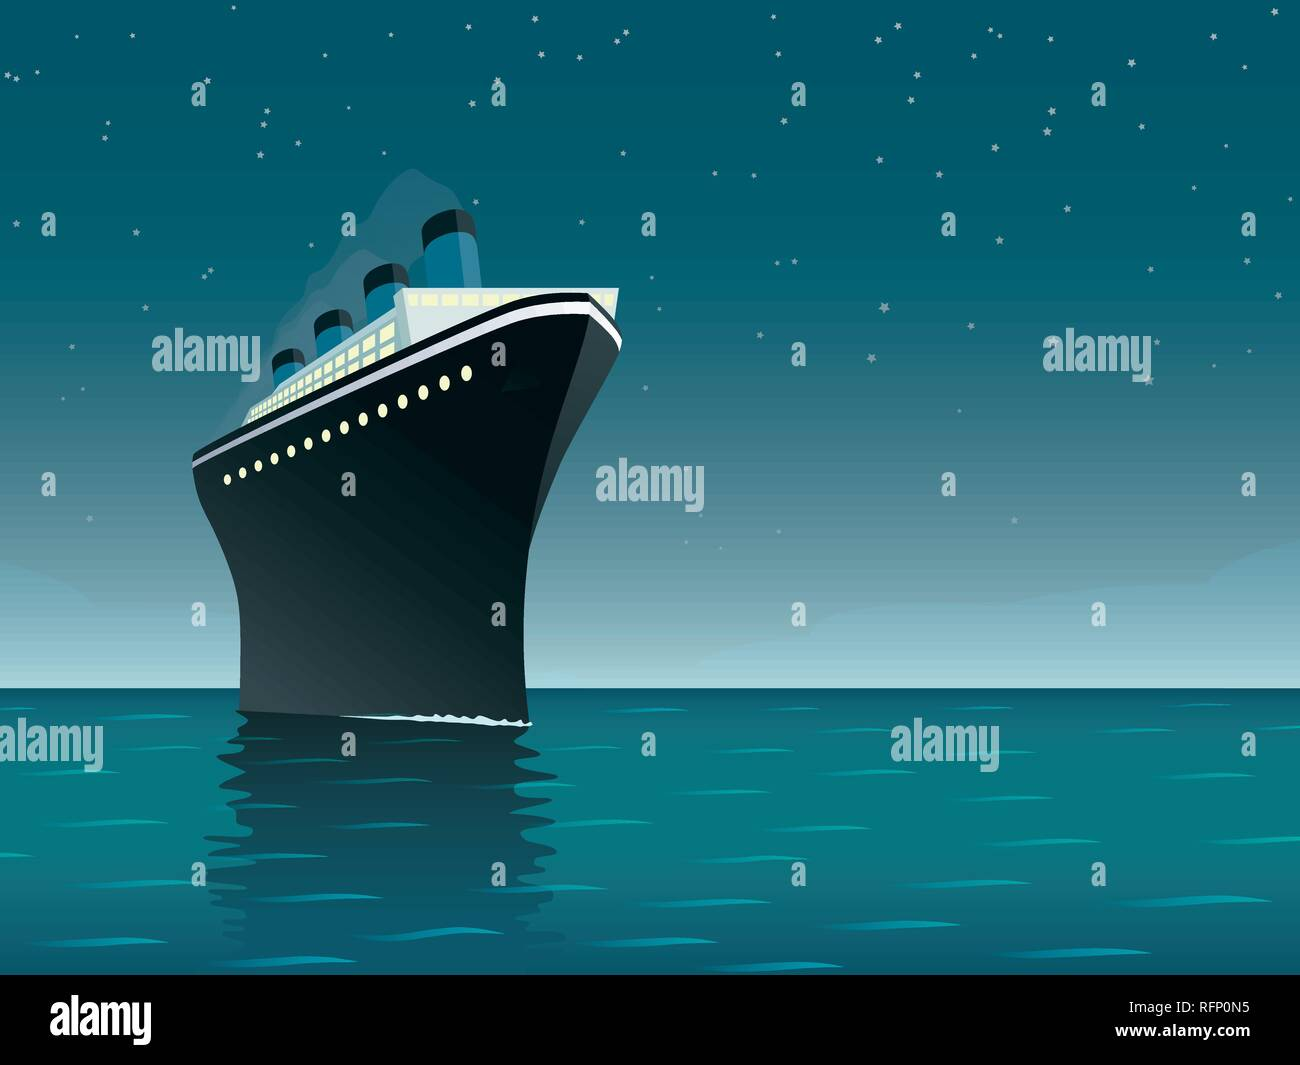 Vintage style horizontal vector illustration of giant cruise ship on the ocean at starry night - Stock Vector